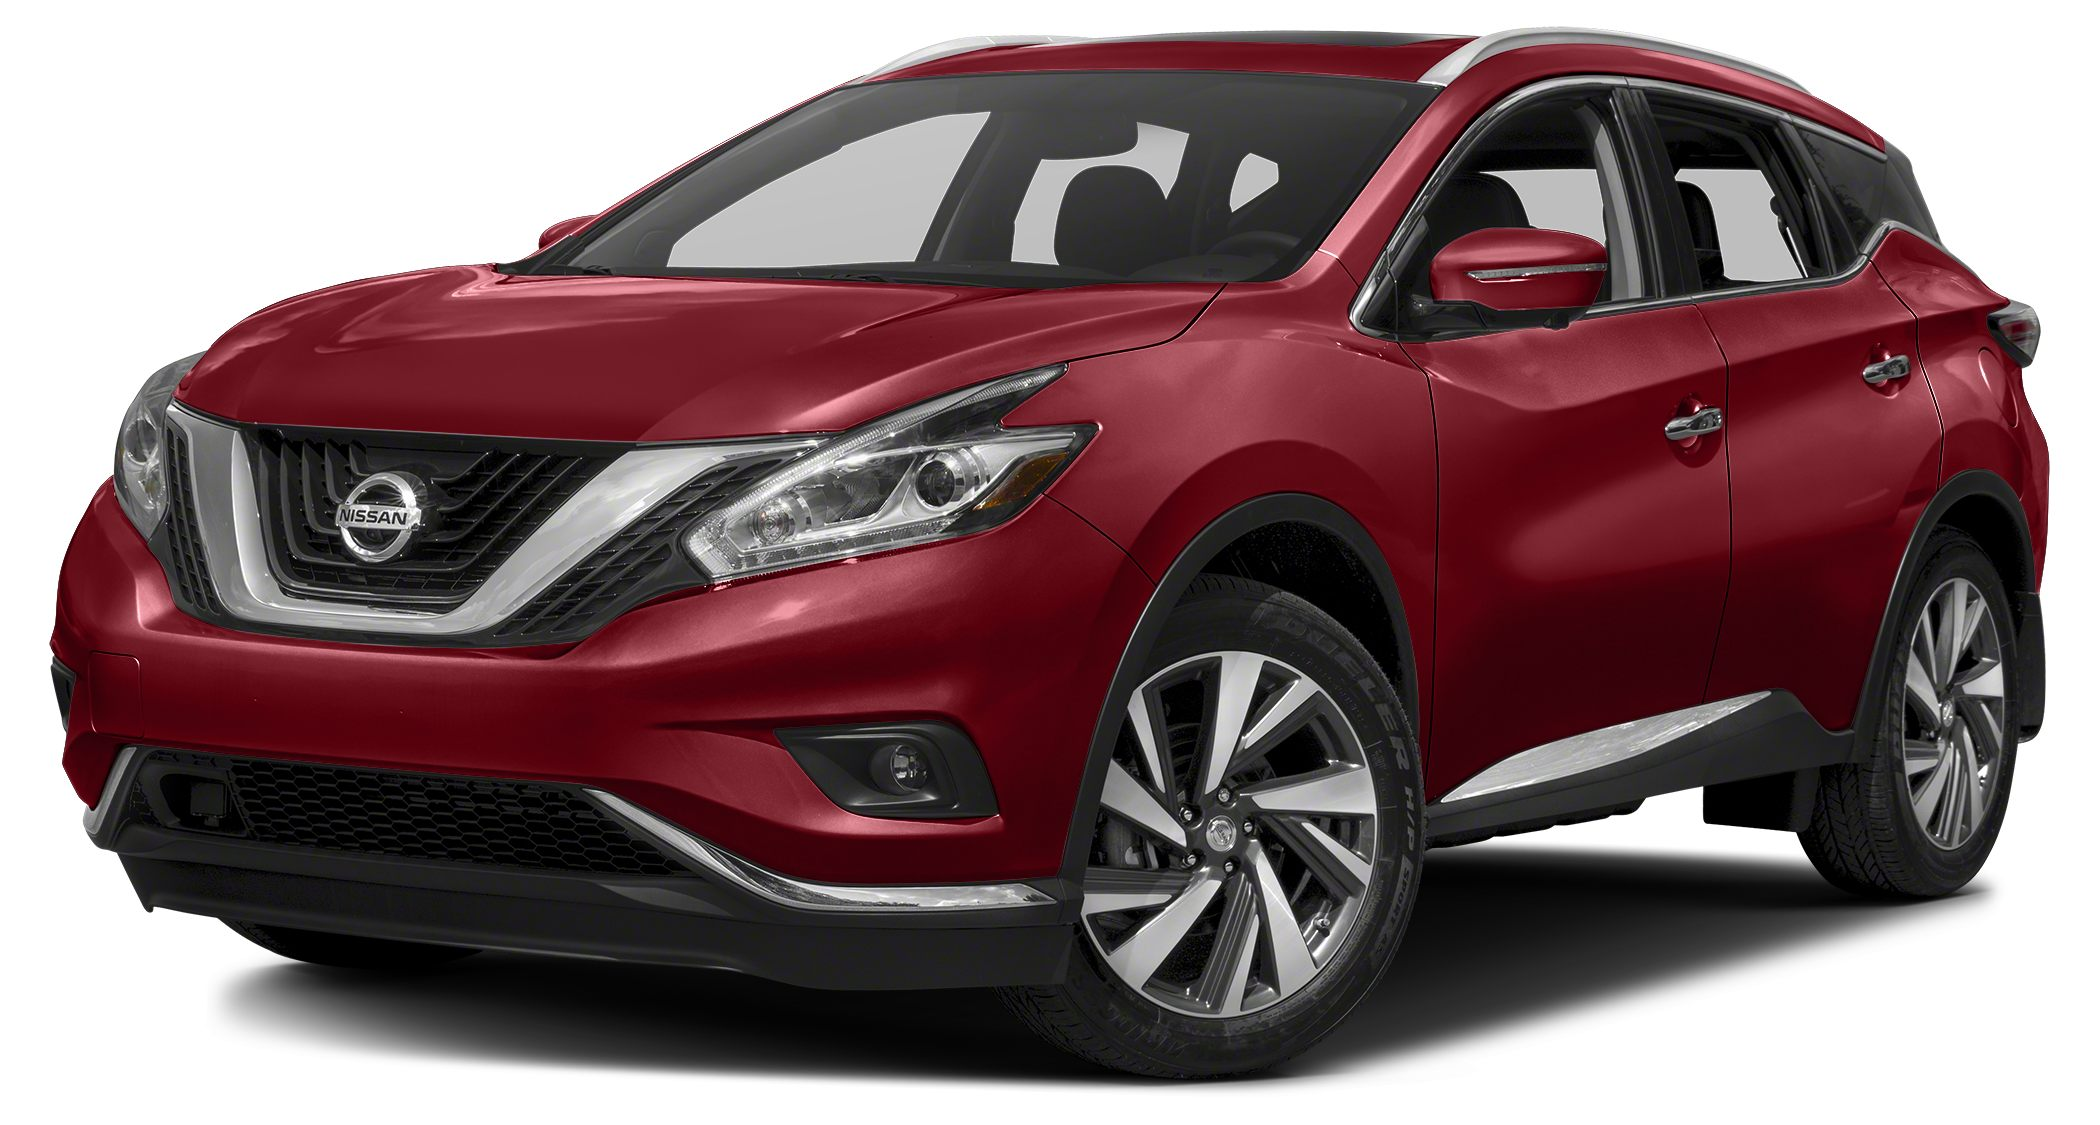 2016 Nissan Murano Platinum This 2016 Nissan MURANO Platinum will sell fast Heated Front Seats